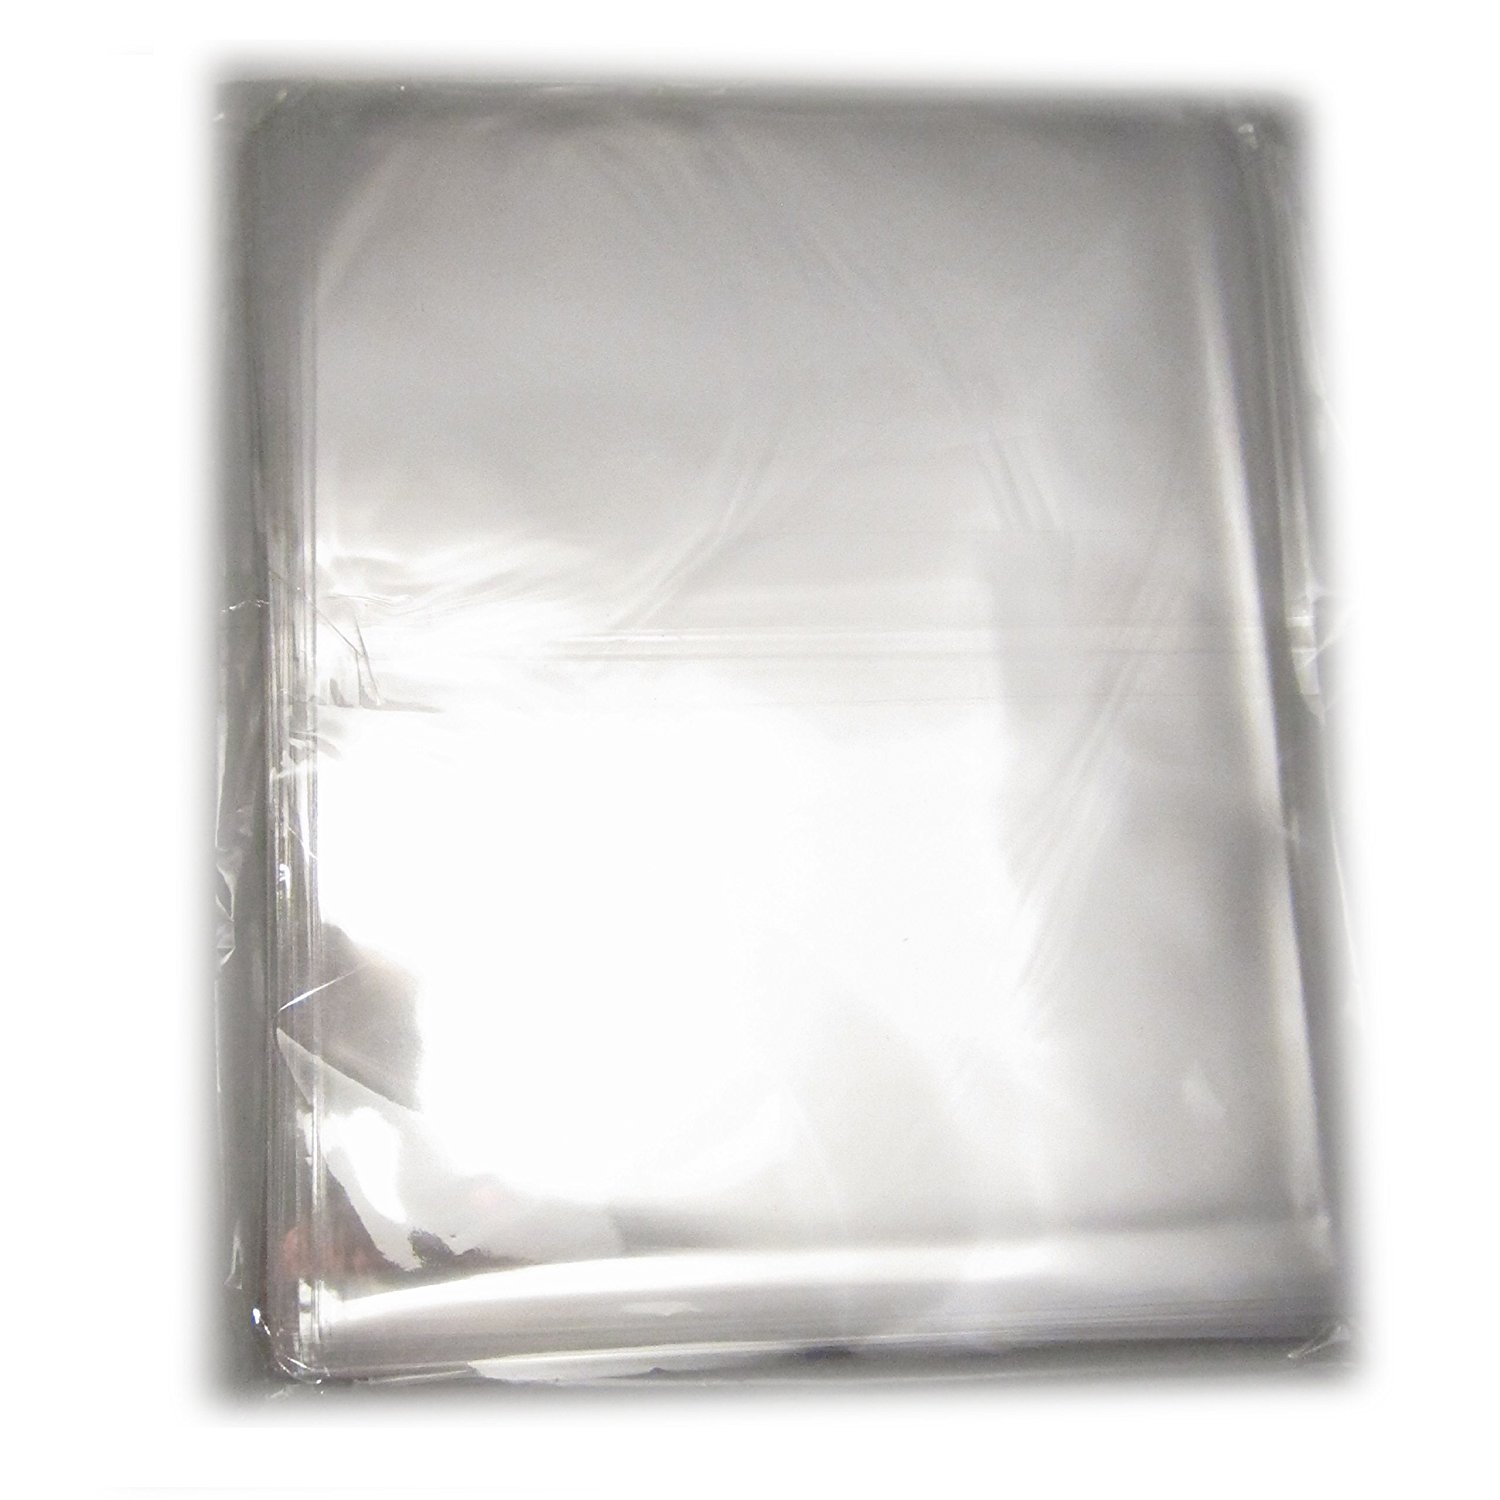 Amazon.com : Approx. 100 Pcs 11X14 Inch Clear Flat Cello Cellophane ...